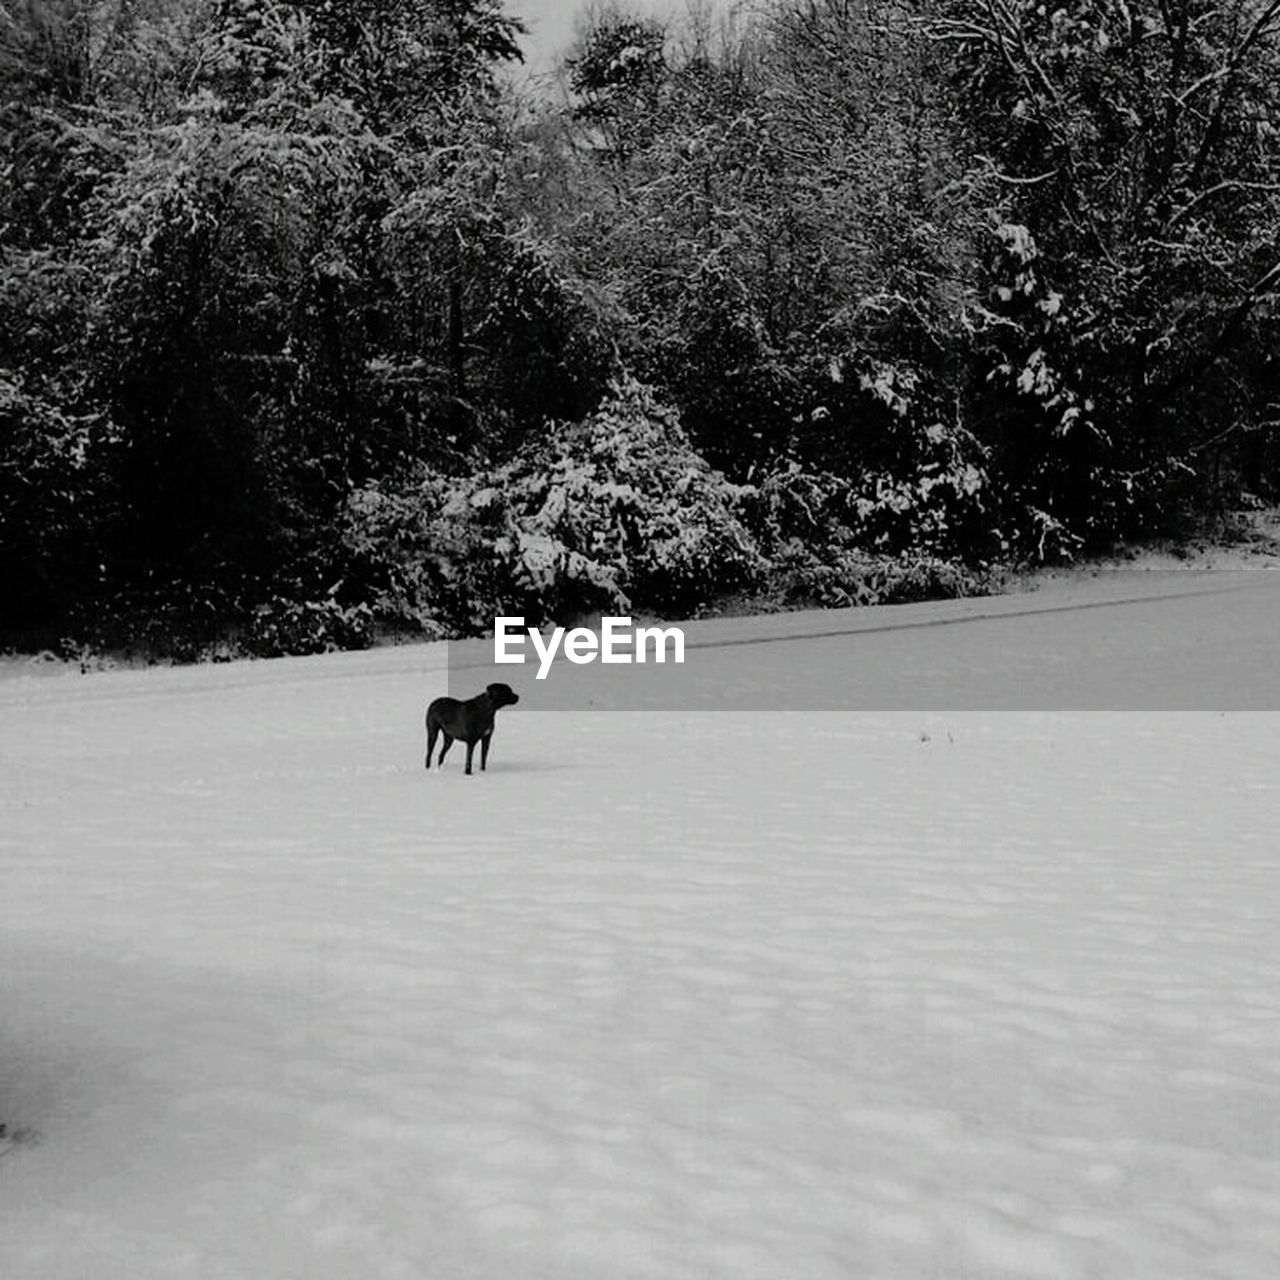 winter, snow, cold temperature, nature, tree, animal themes, dog, domestic animals, mammal, weather, outdoors, pets, field, one animal, day, full length, no people, beauty in nature, landscape